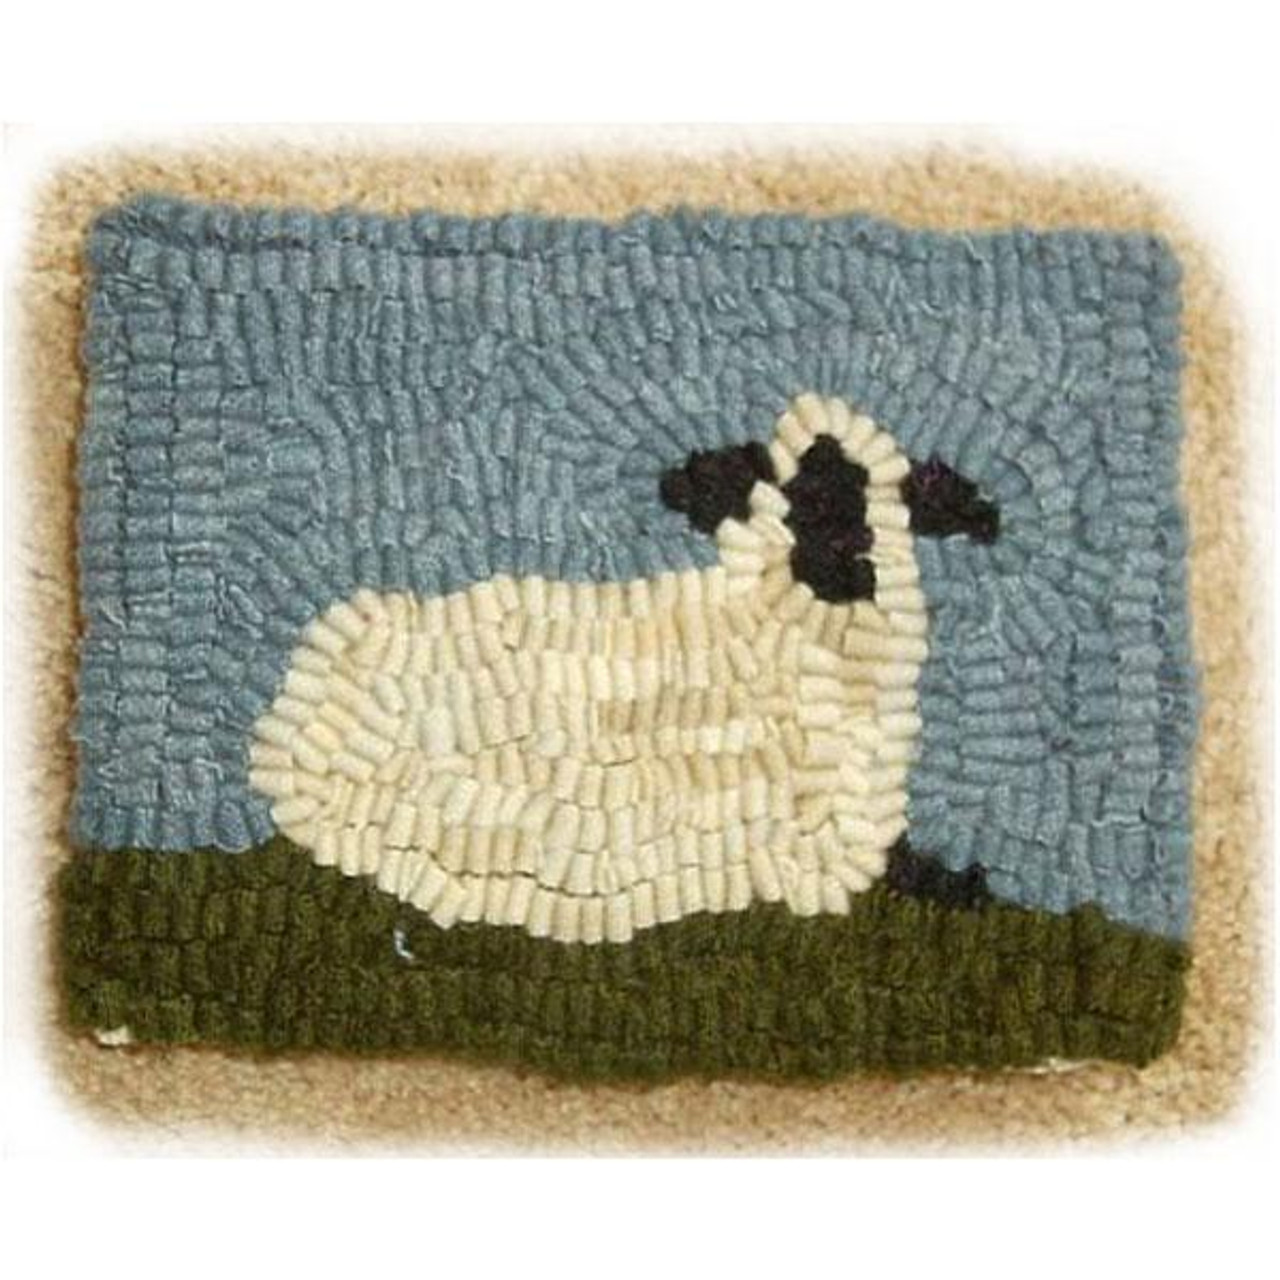 Cardinal on Oats  Background Primitive Rug Hooking Kit with Cut Wool Strips Great for Beginners